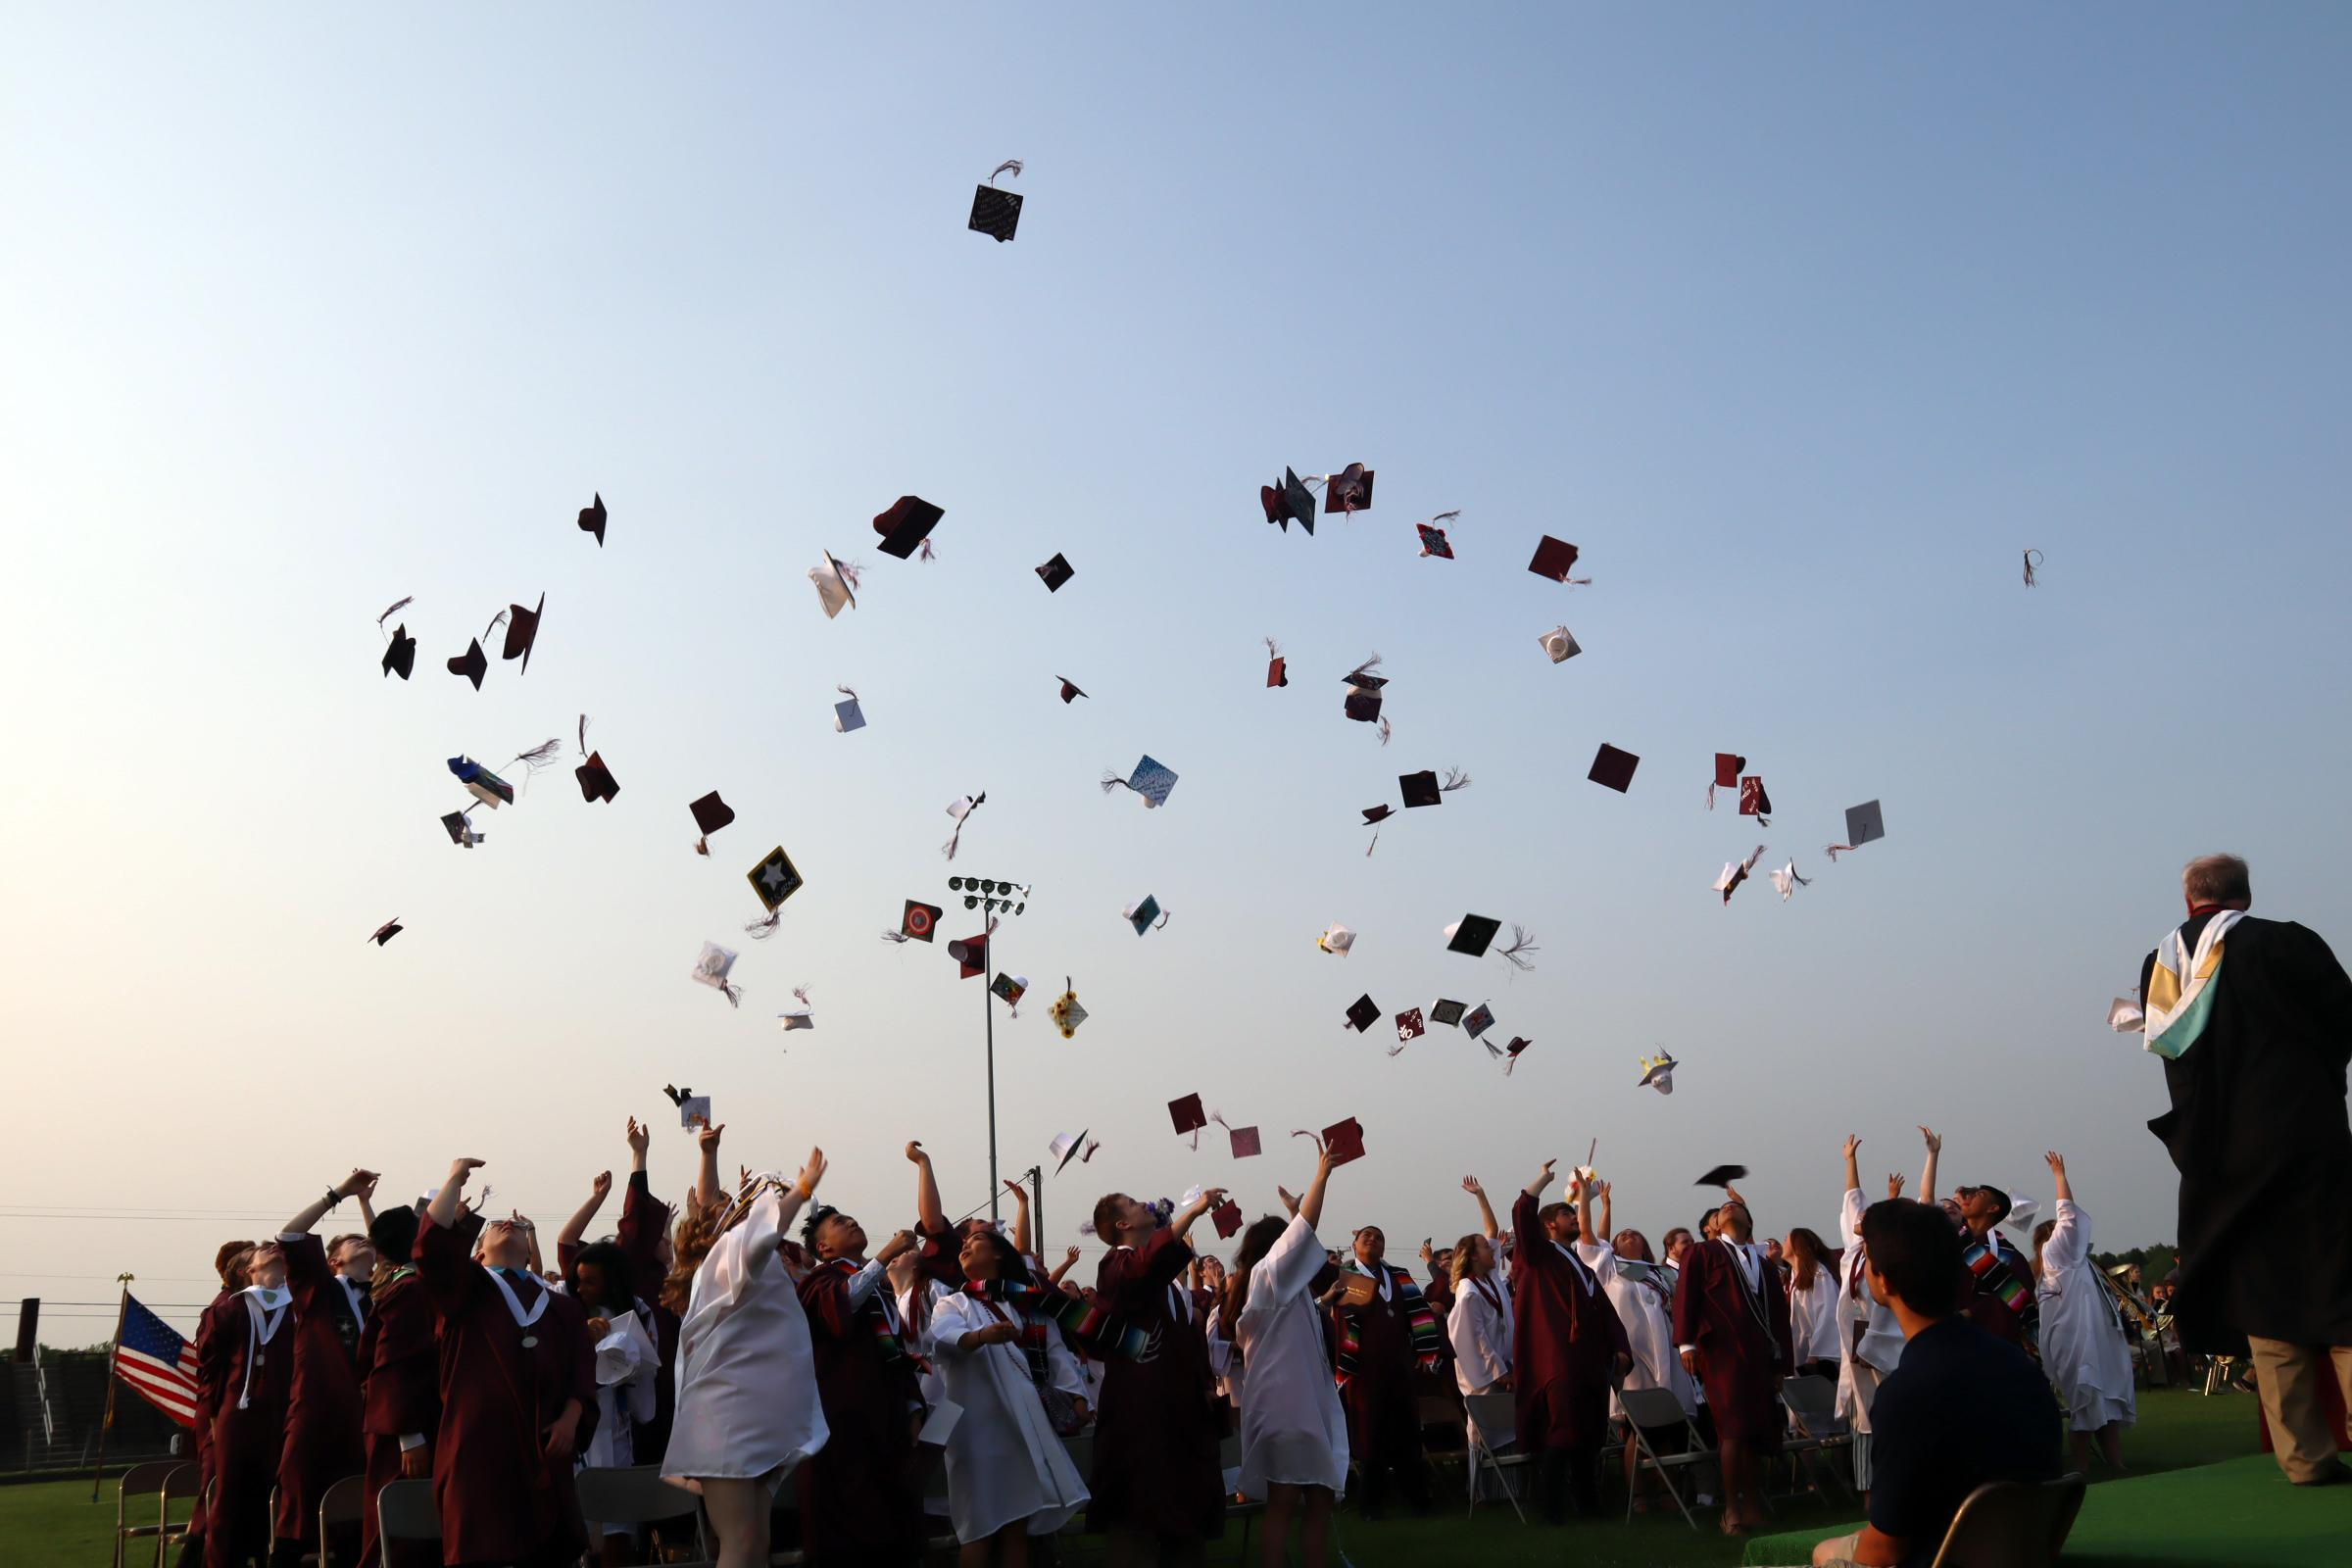 Grads throwing hats in air